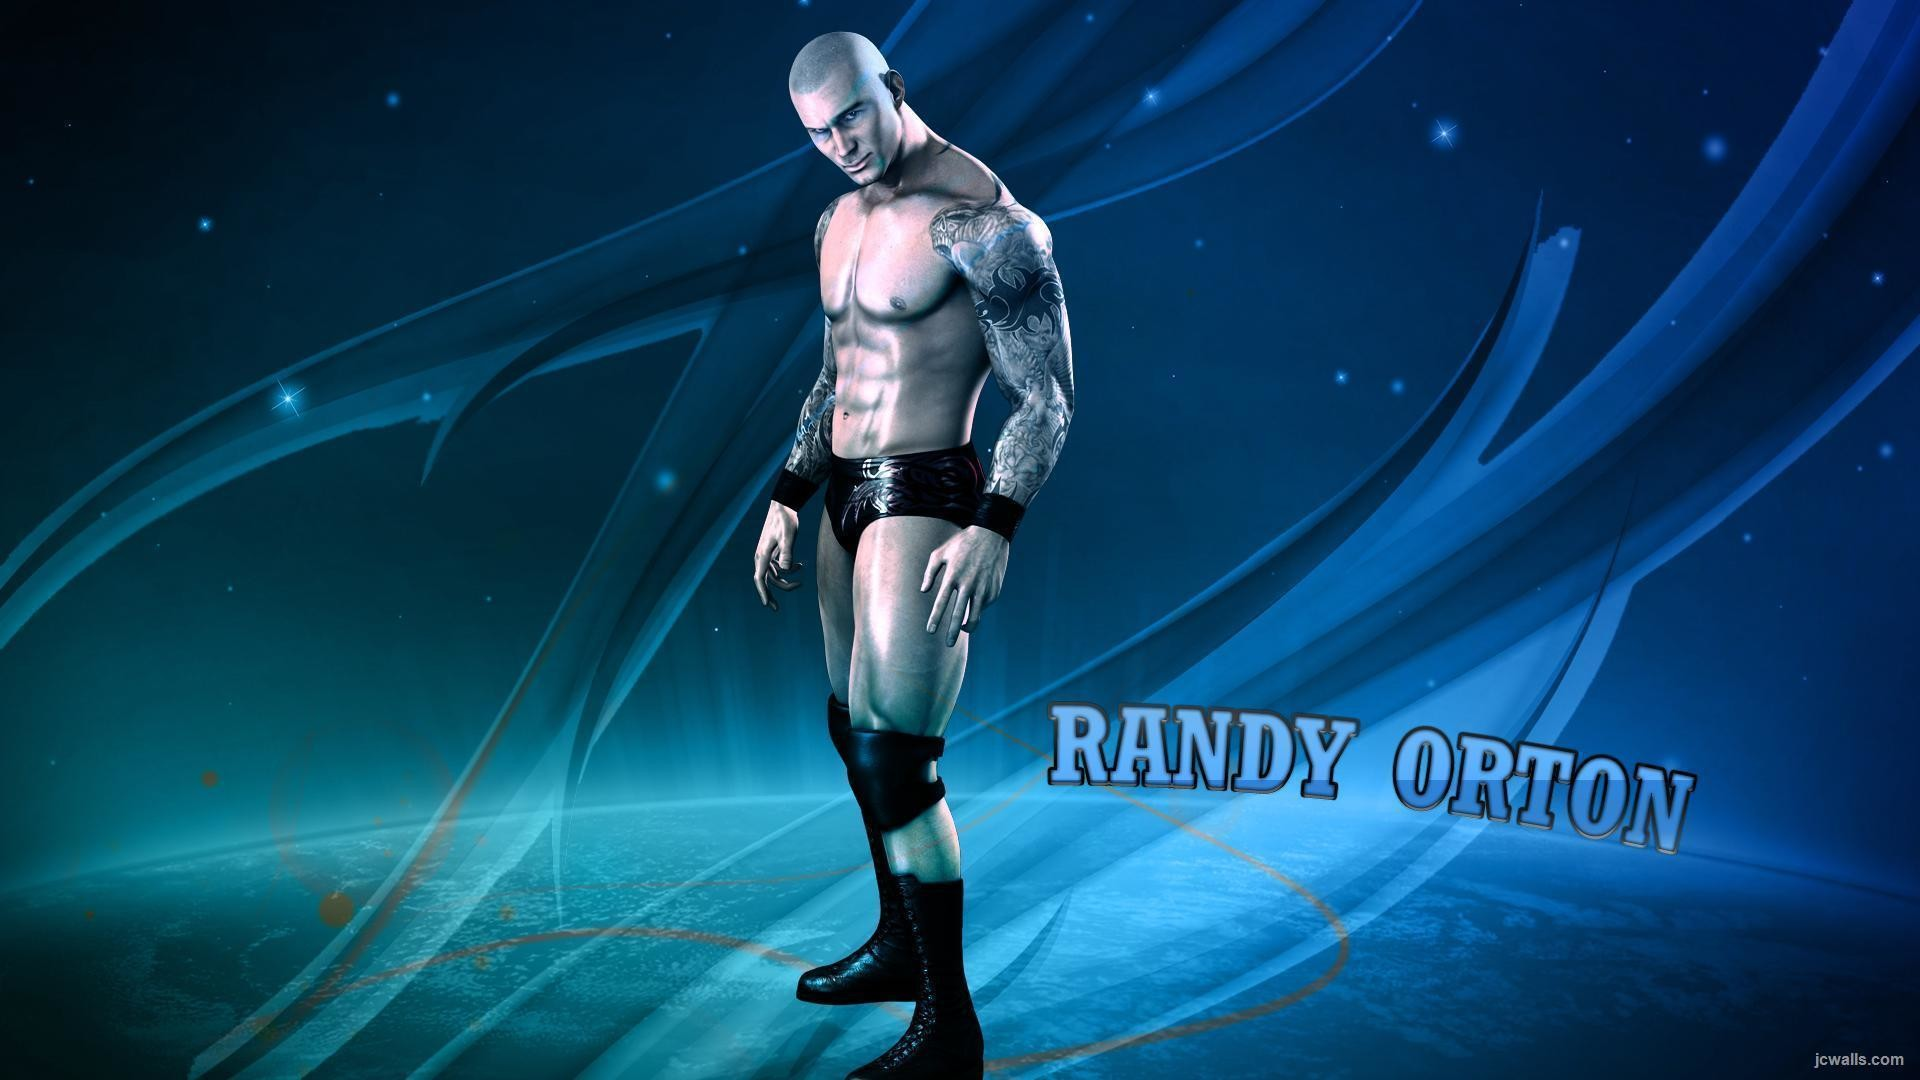 1920x1080 Randy Orton Rko Wallpaper 2013 54154